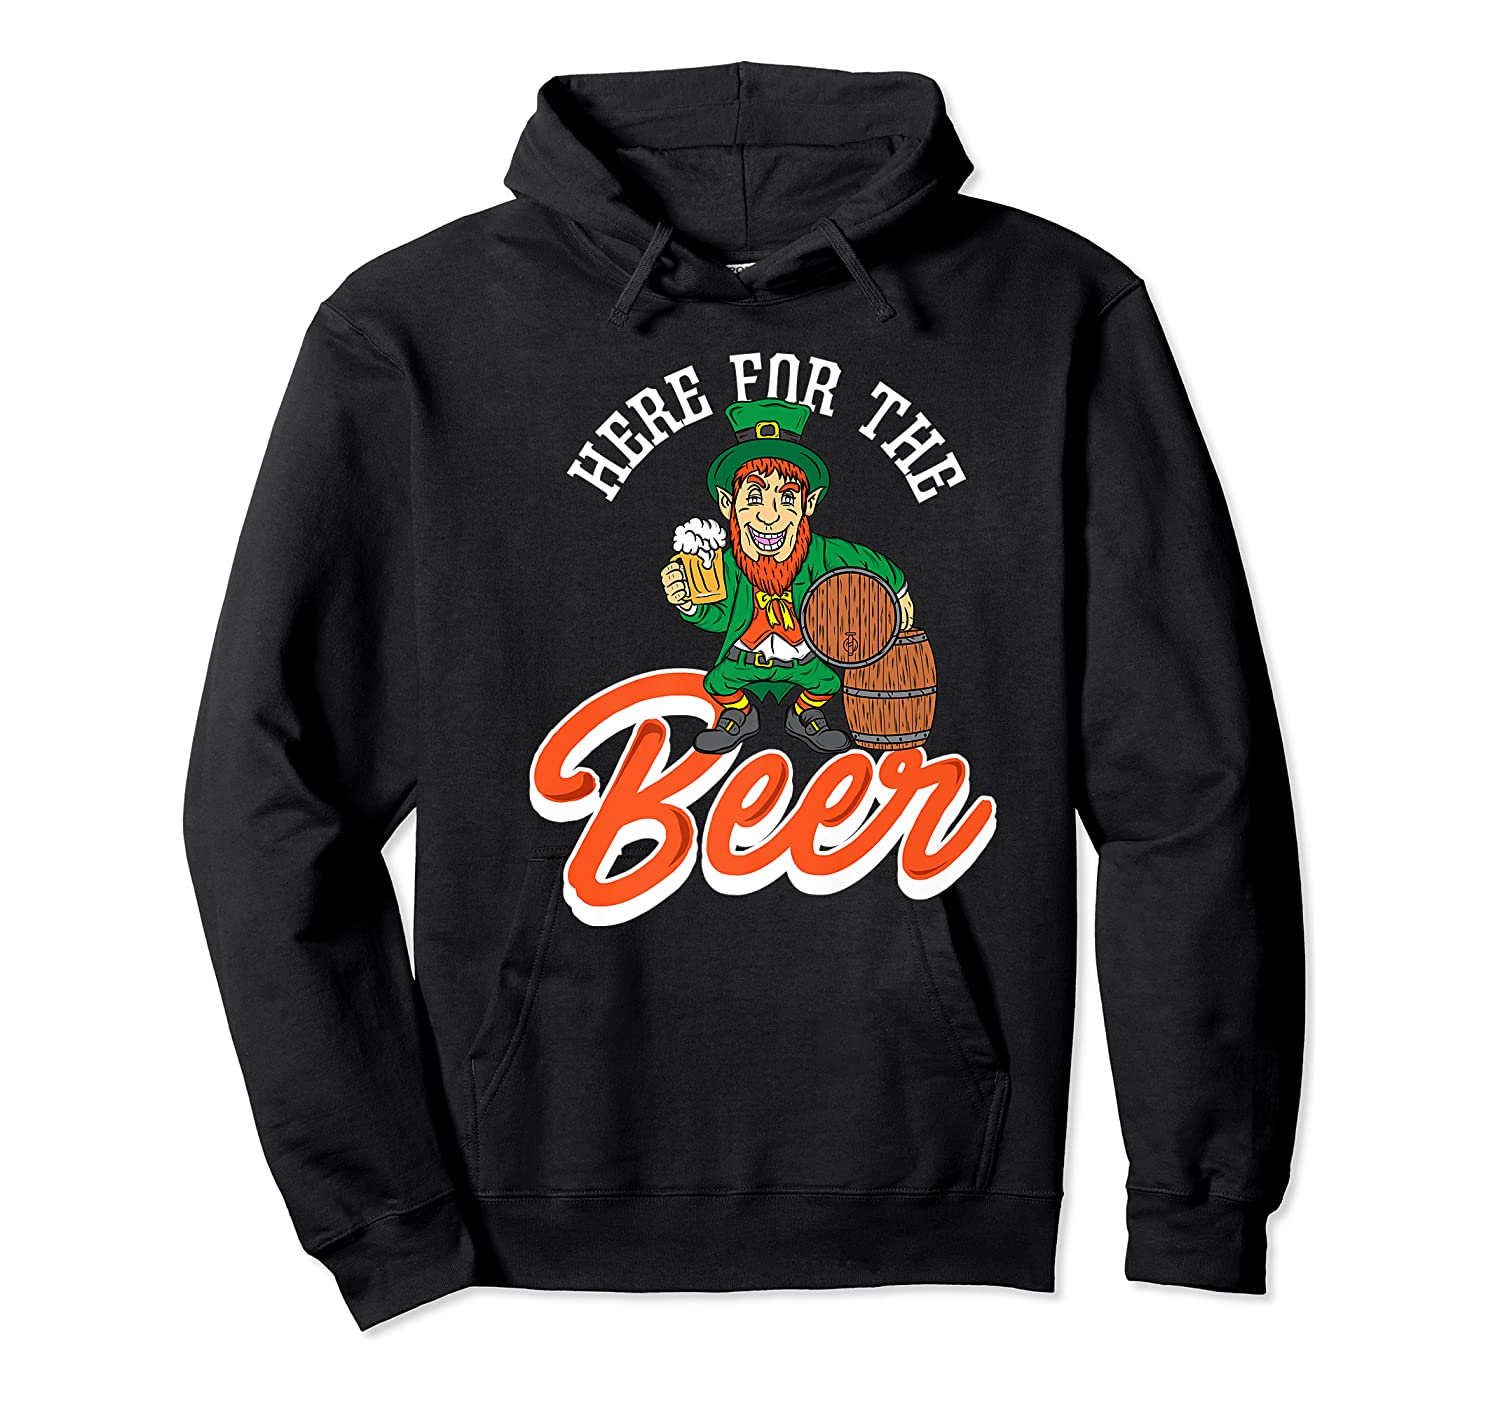 Here For The Beer | Funny St. Patrick's Day Drunk Premium T-shirt Unisex Pullover Hoodie